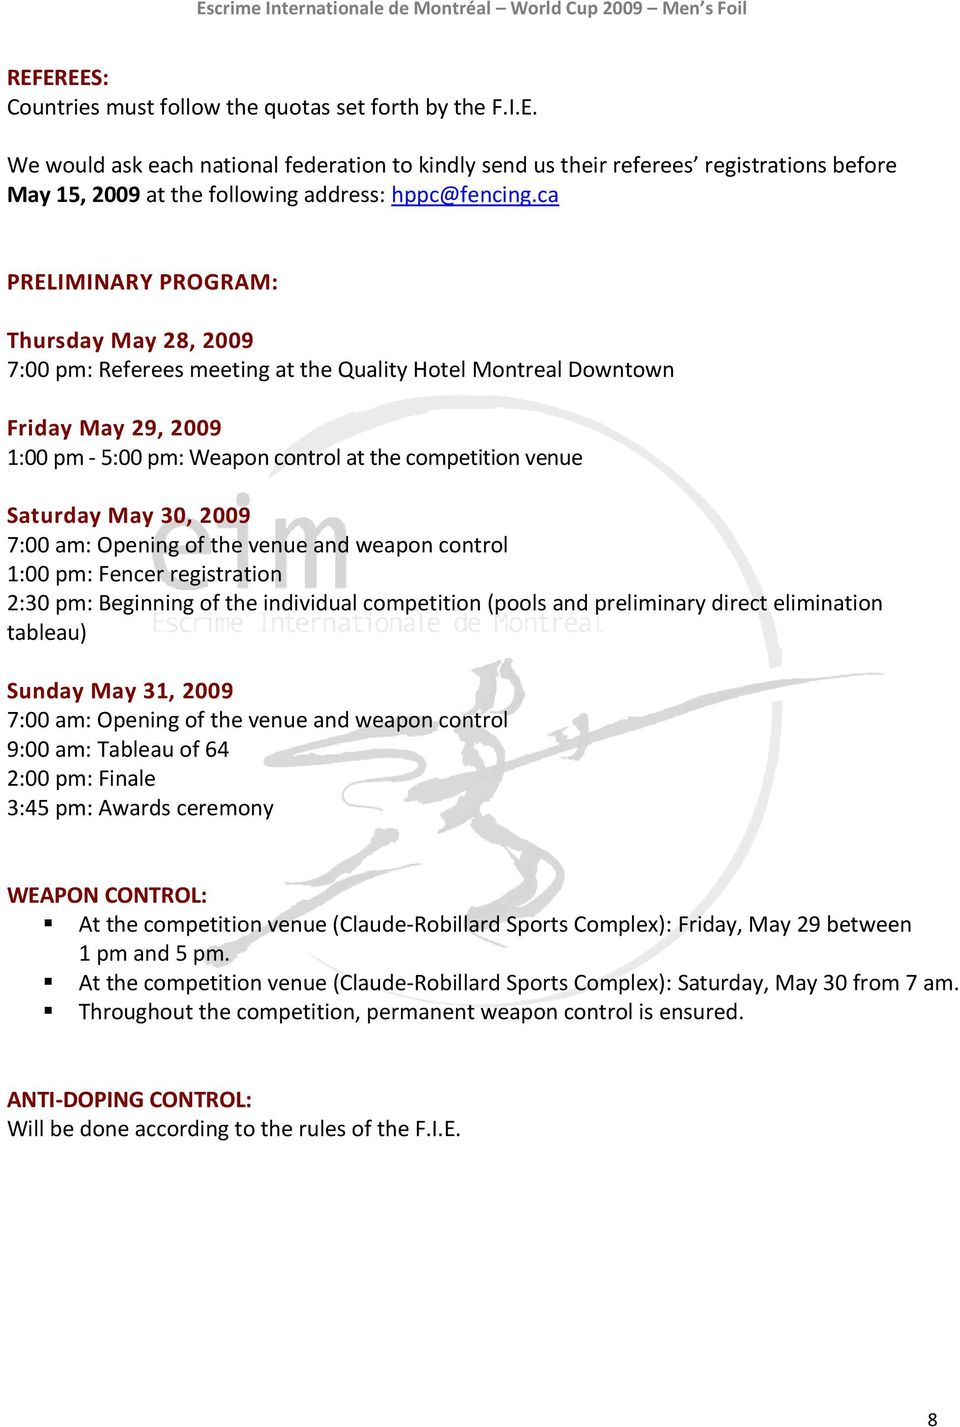 May 30, 2009 7:00 am: Opening of the venue and weapon control 1:00 pm: Fencer registration 2:30 pm: Beginning of the individual competition (pools and preliminary direct elimination tableau) Sunday